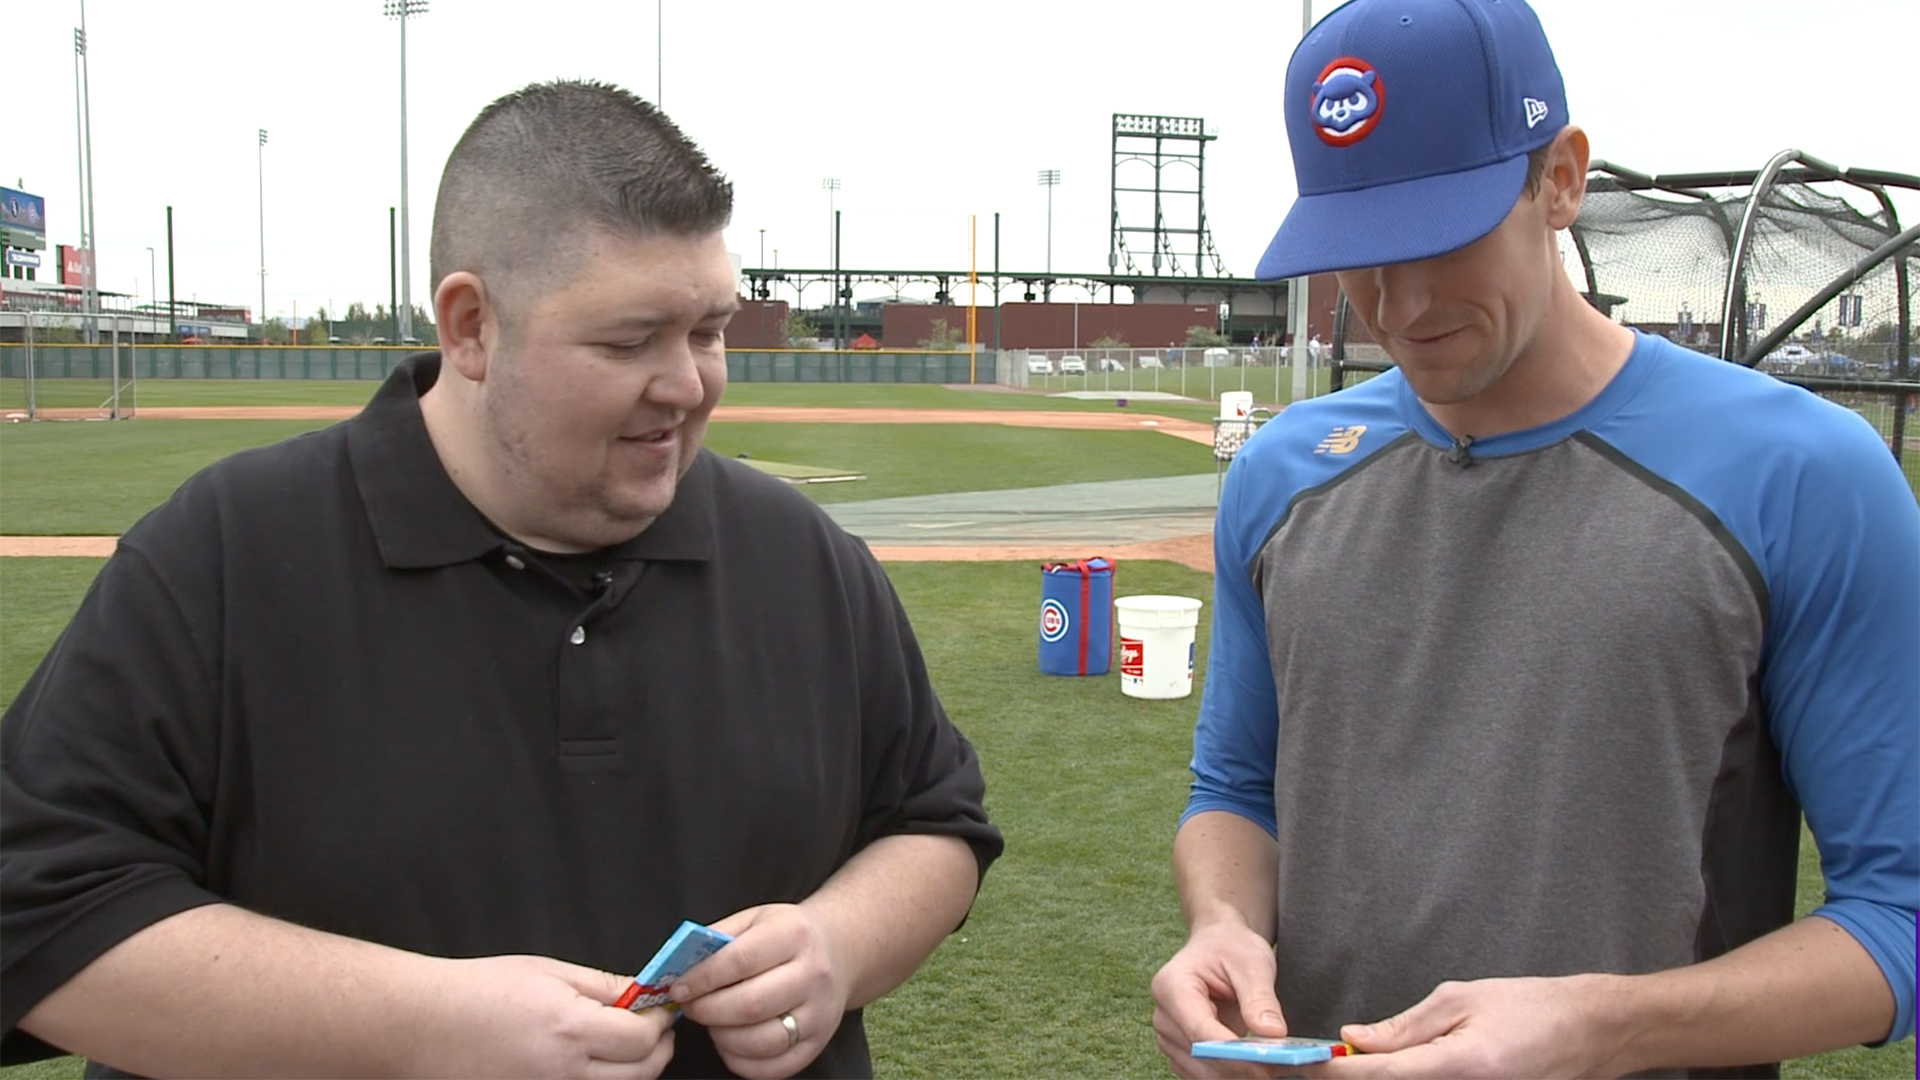 Kyle Hendricks opening old Topps cards from 1992. (Yahoo Sports)